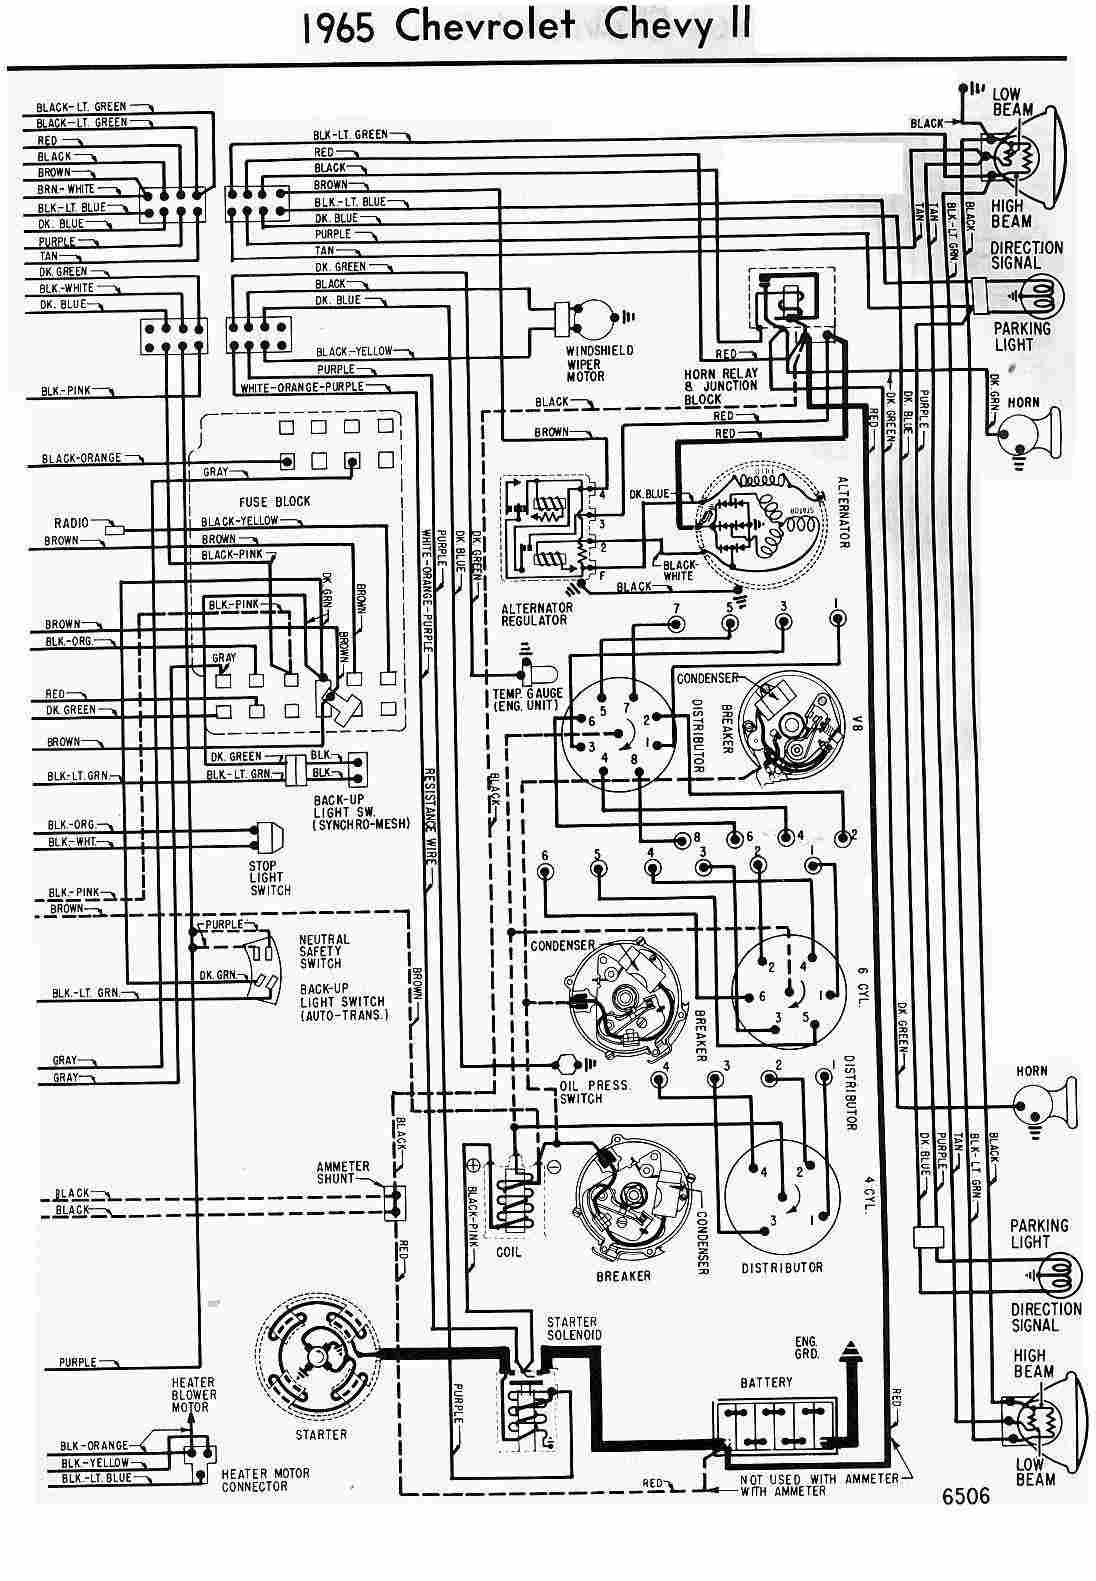 chevrolet car wiring diagrams download [ 1096 x 1581 Pixel ]